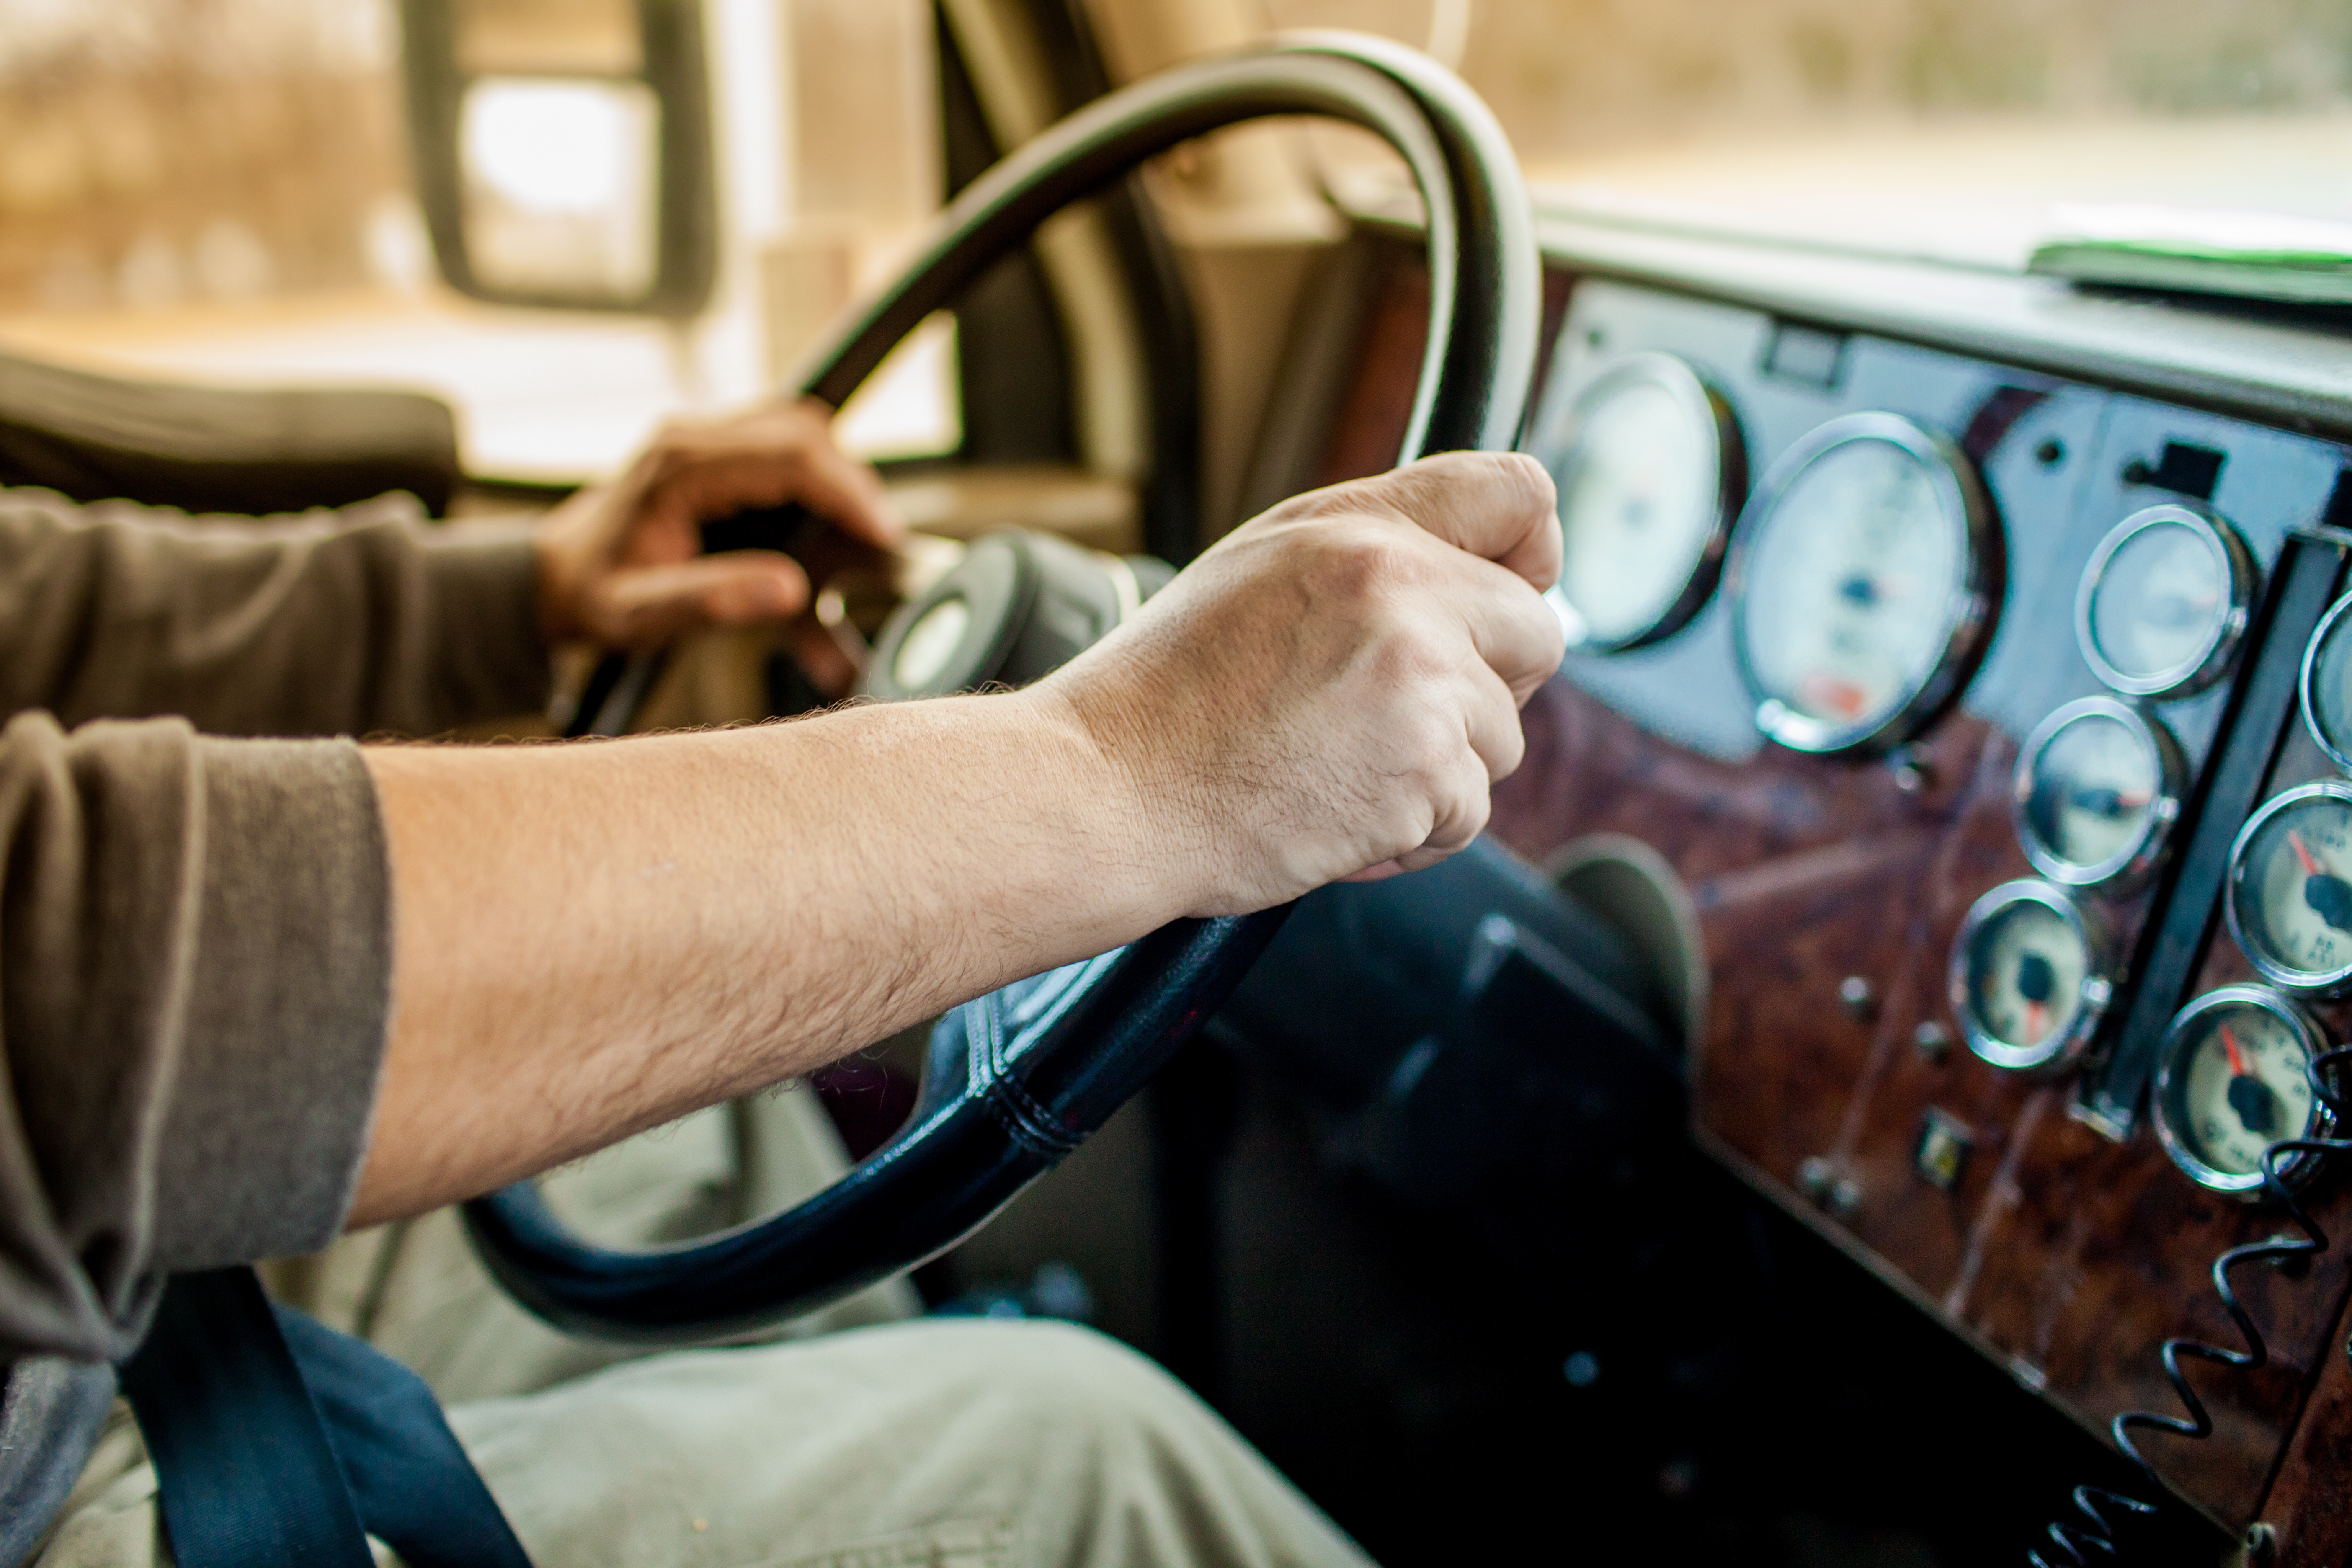 Truck Driver Gripping Steering Wheel